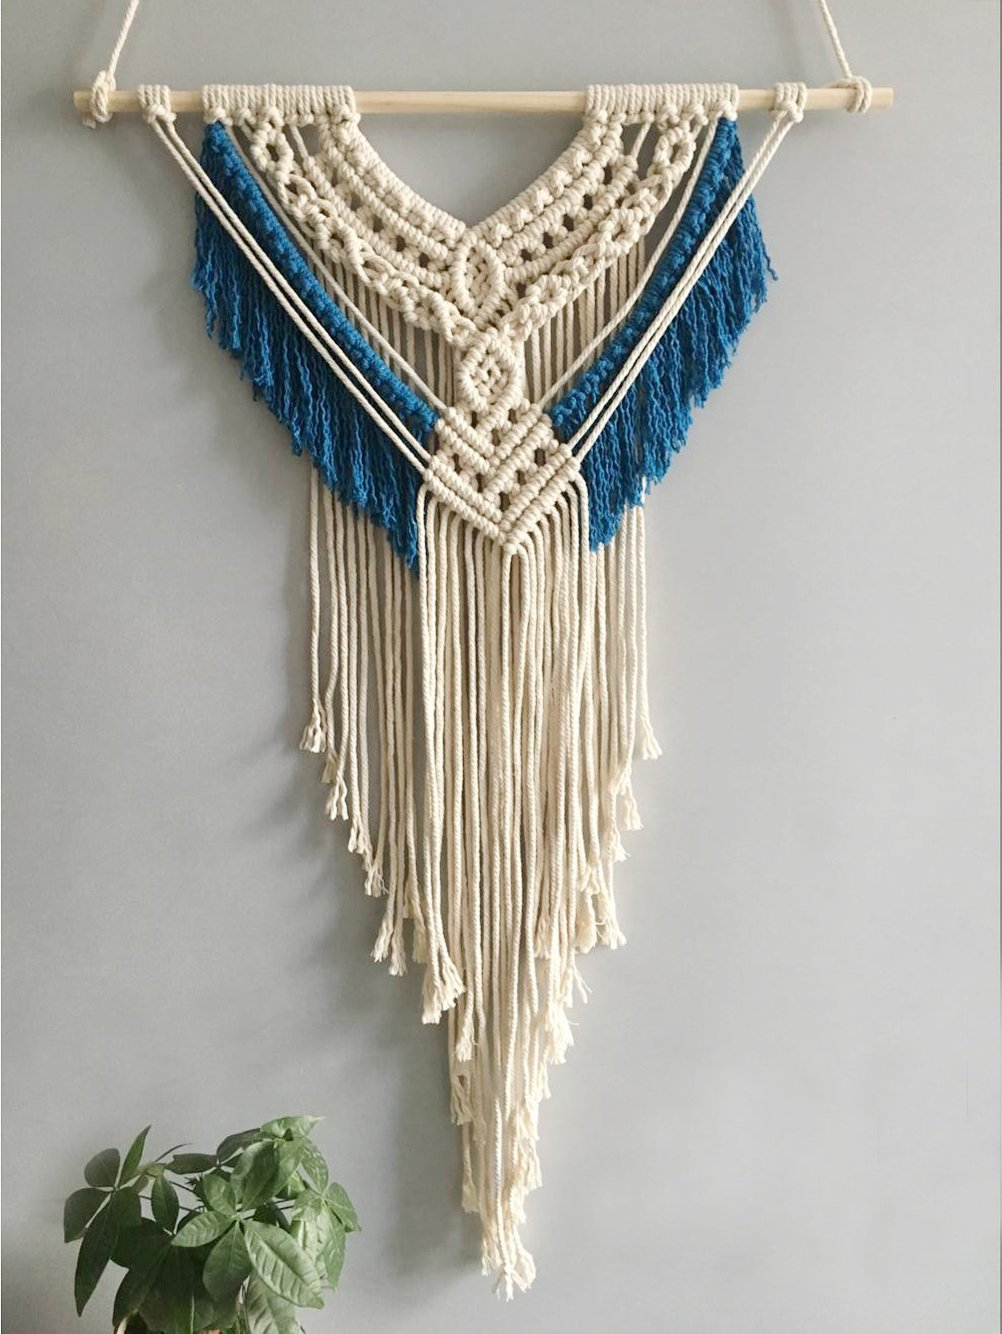 Youngeast 100% Handmade Boho Macrame Wall Hanging Home Décor,Blue